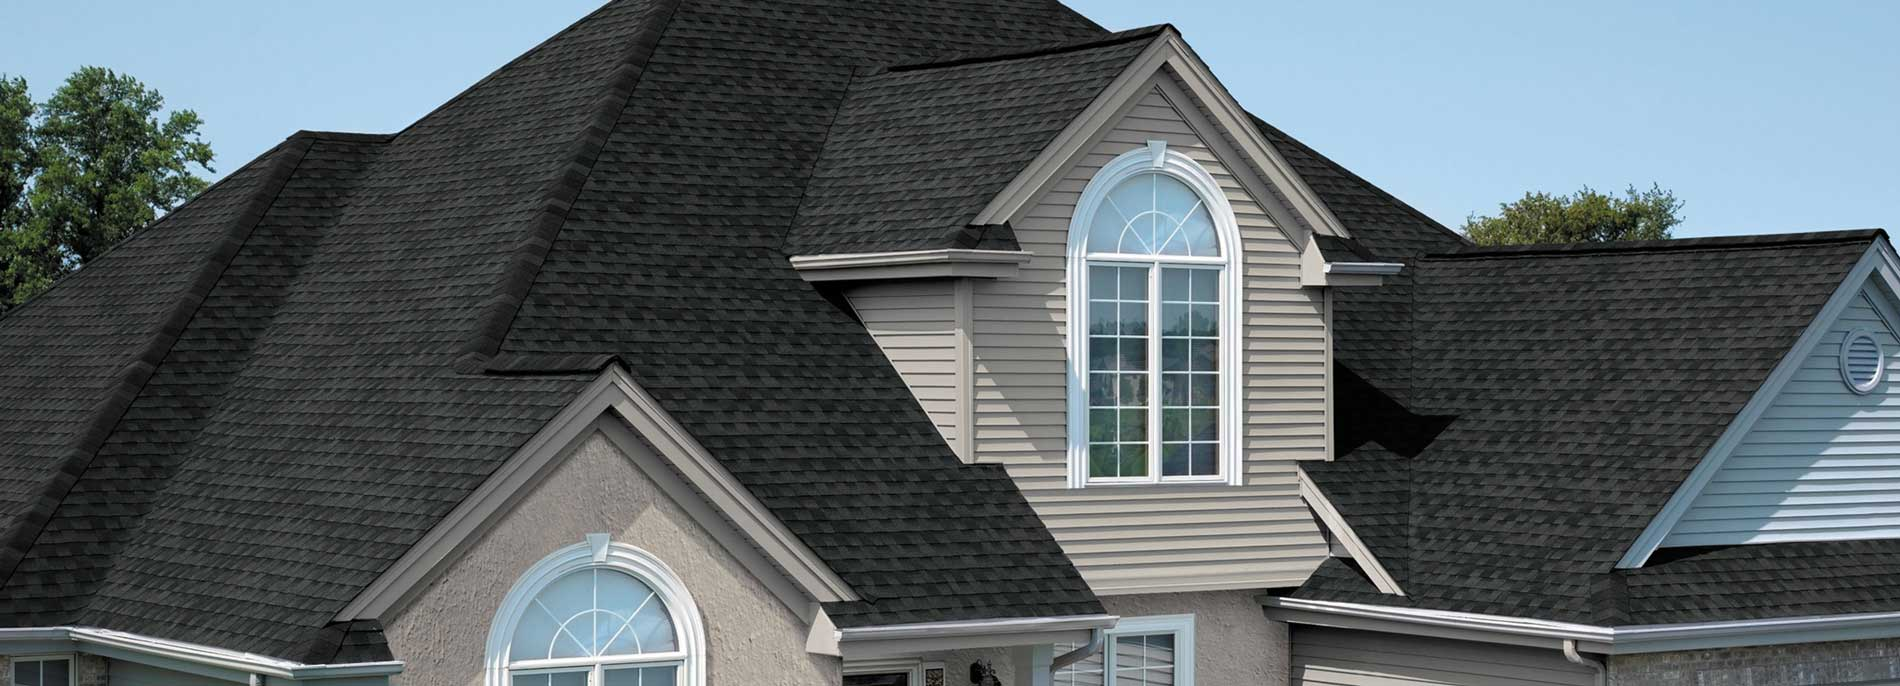 Roberts Roofing NY 845-566-7663 | Home Improvement ...